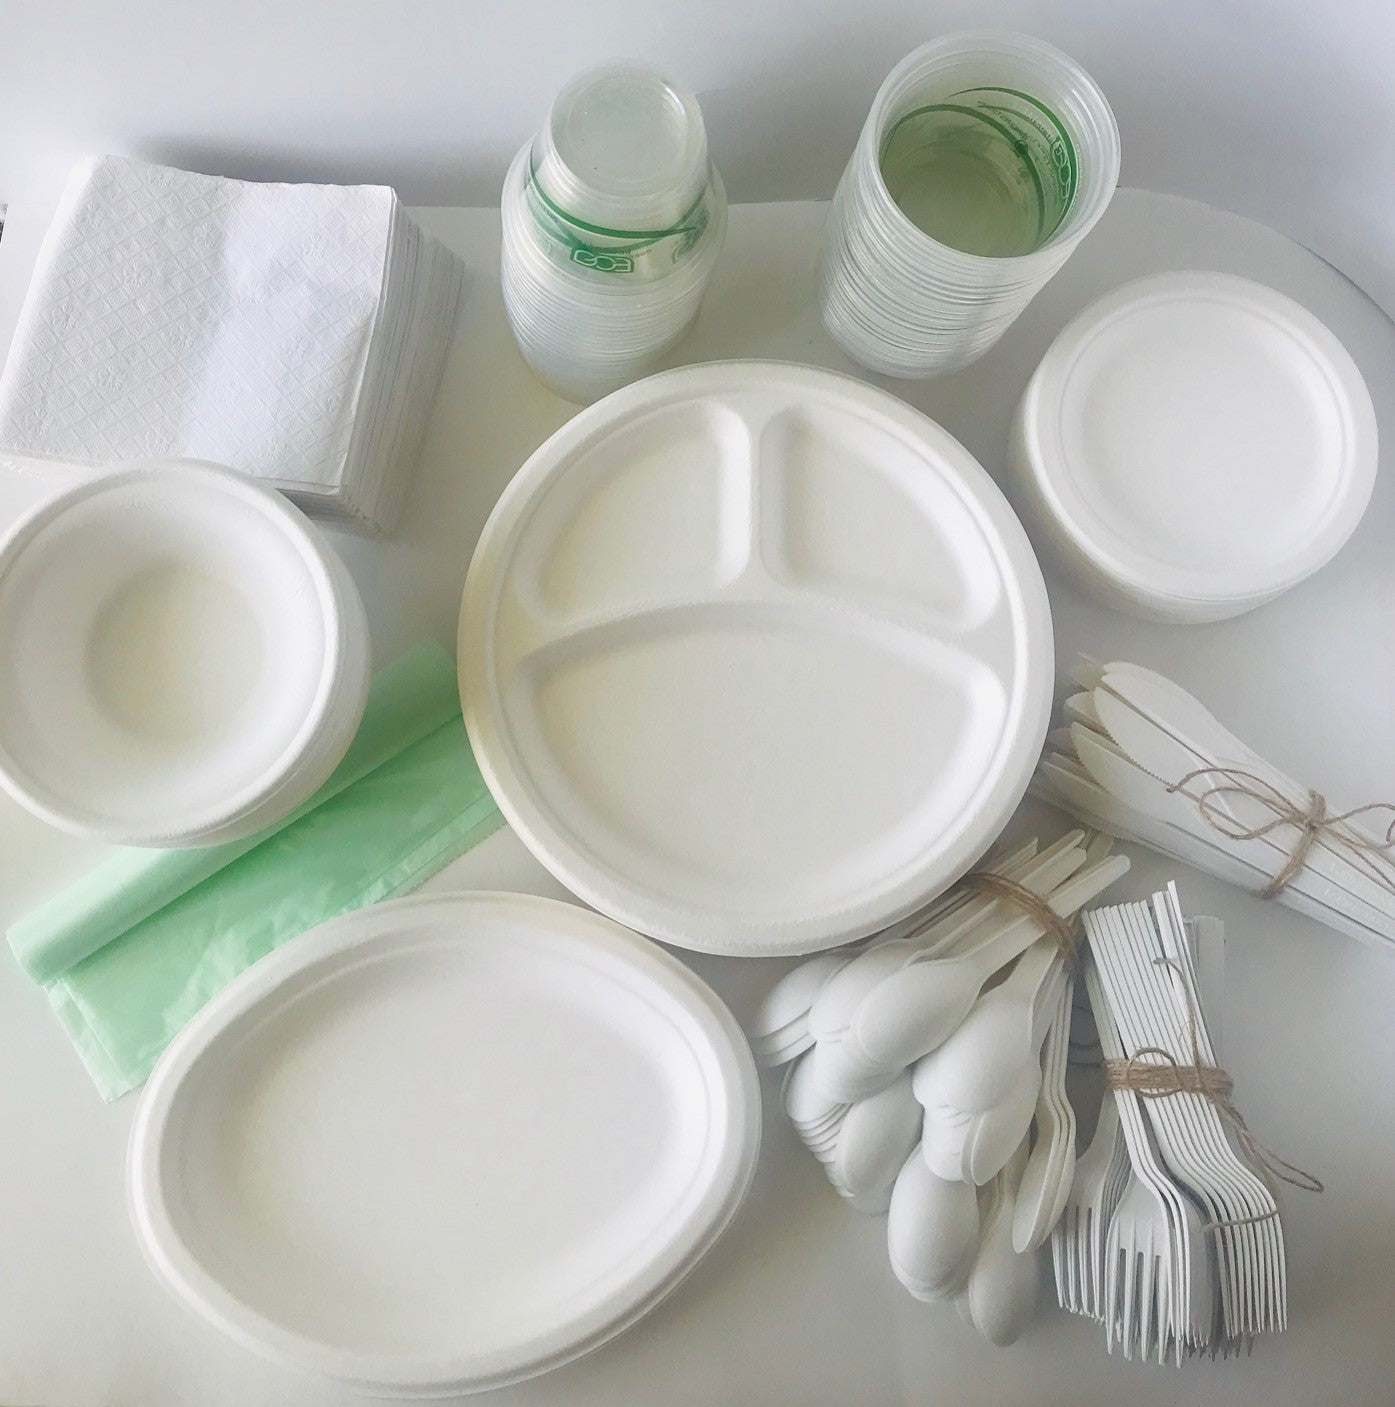 Eco-Party Pack 50 - ROUND SUGAR SET - Biodegradable  Compostable Tableware